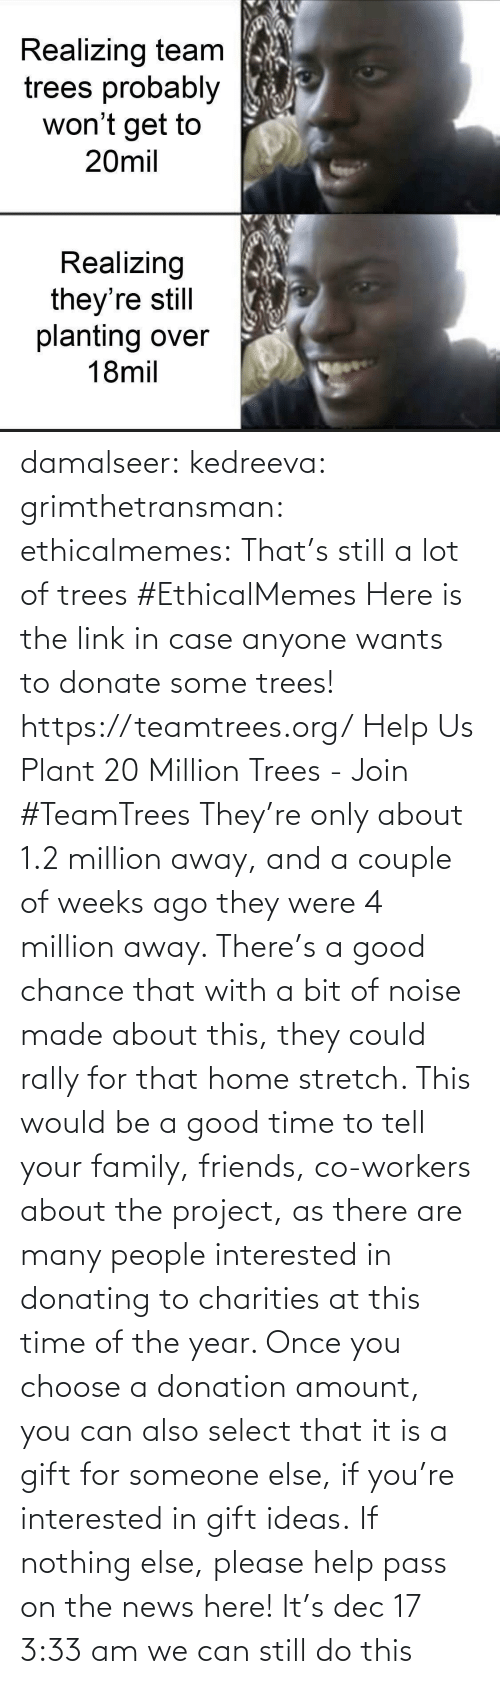 A Couple Of: Realizing team  trees probably  won't get to  20mil  Realizing  they're still  planting over  18mil damalseer:  kedreeva: grimthetransman:  ethicalmemes:  That's still a lot of trees #EthicalMemes   Here is the link in case anyone wants to donate some trees!  https://teamtrees.org/ Help Us Plant 20 Million Trees - Join #TeamTrees  They're only about 1.2 million away, and a couple of weeks ago they were 4 million away. There's a good chance that with a bit of noise made about this, they could rally for that home stretch. This would be a good time to tell your family, friends, co-workers about the project, as there are many people interested in donating to charities at this time of the year. Once you choose a donation amount, you can also select that it is a gift for someone else, if you're interested in gift ideas. If nothing else, please help pass on the news here!    It's dec 17 3:33 am we can still do this